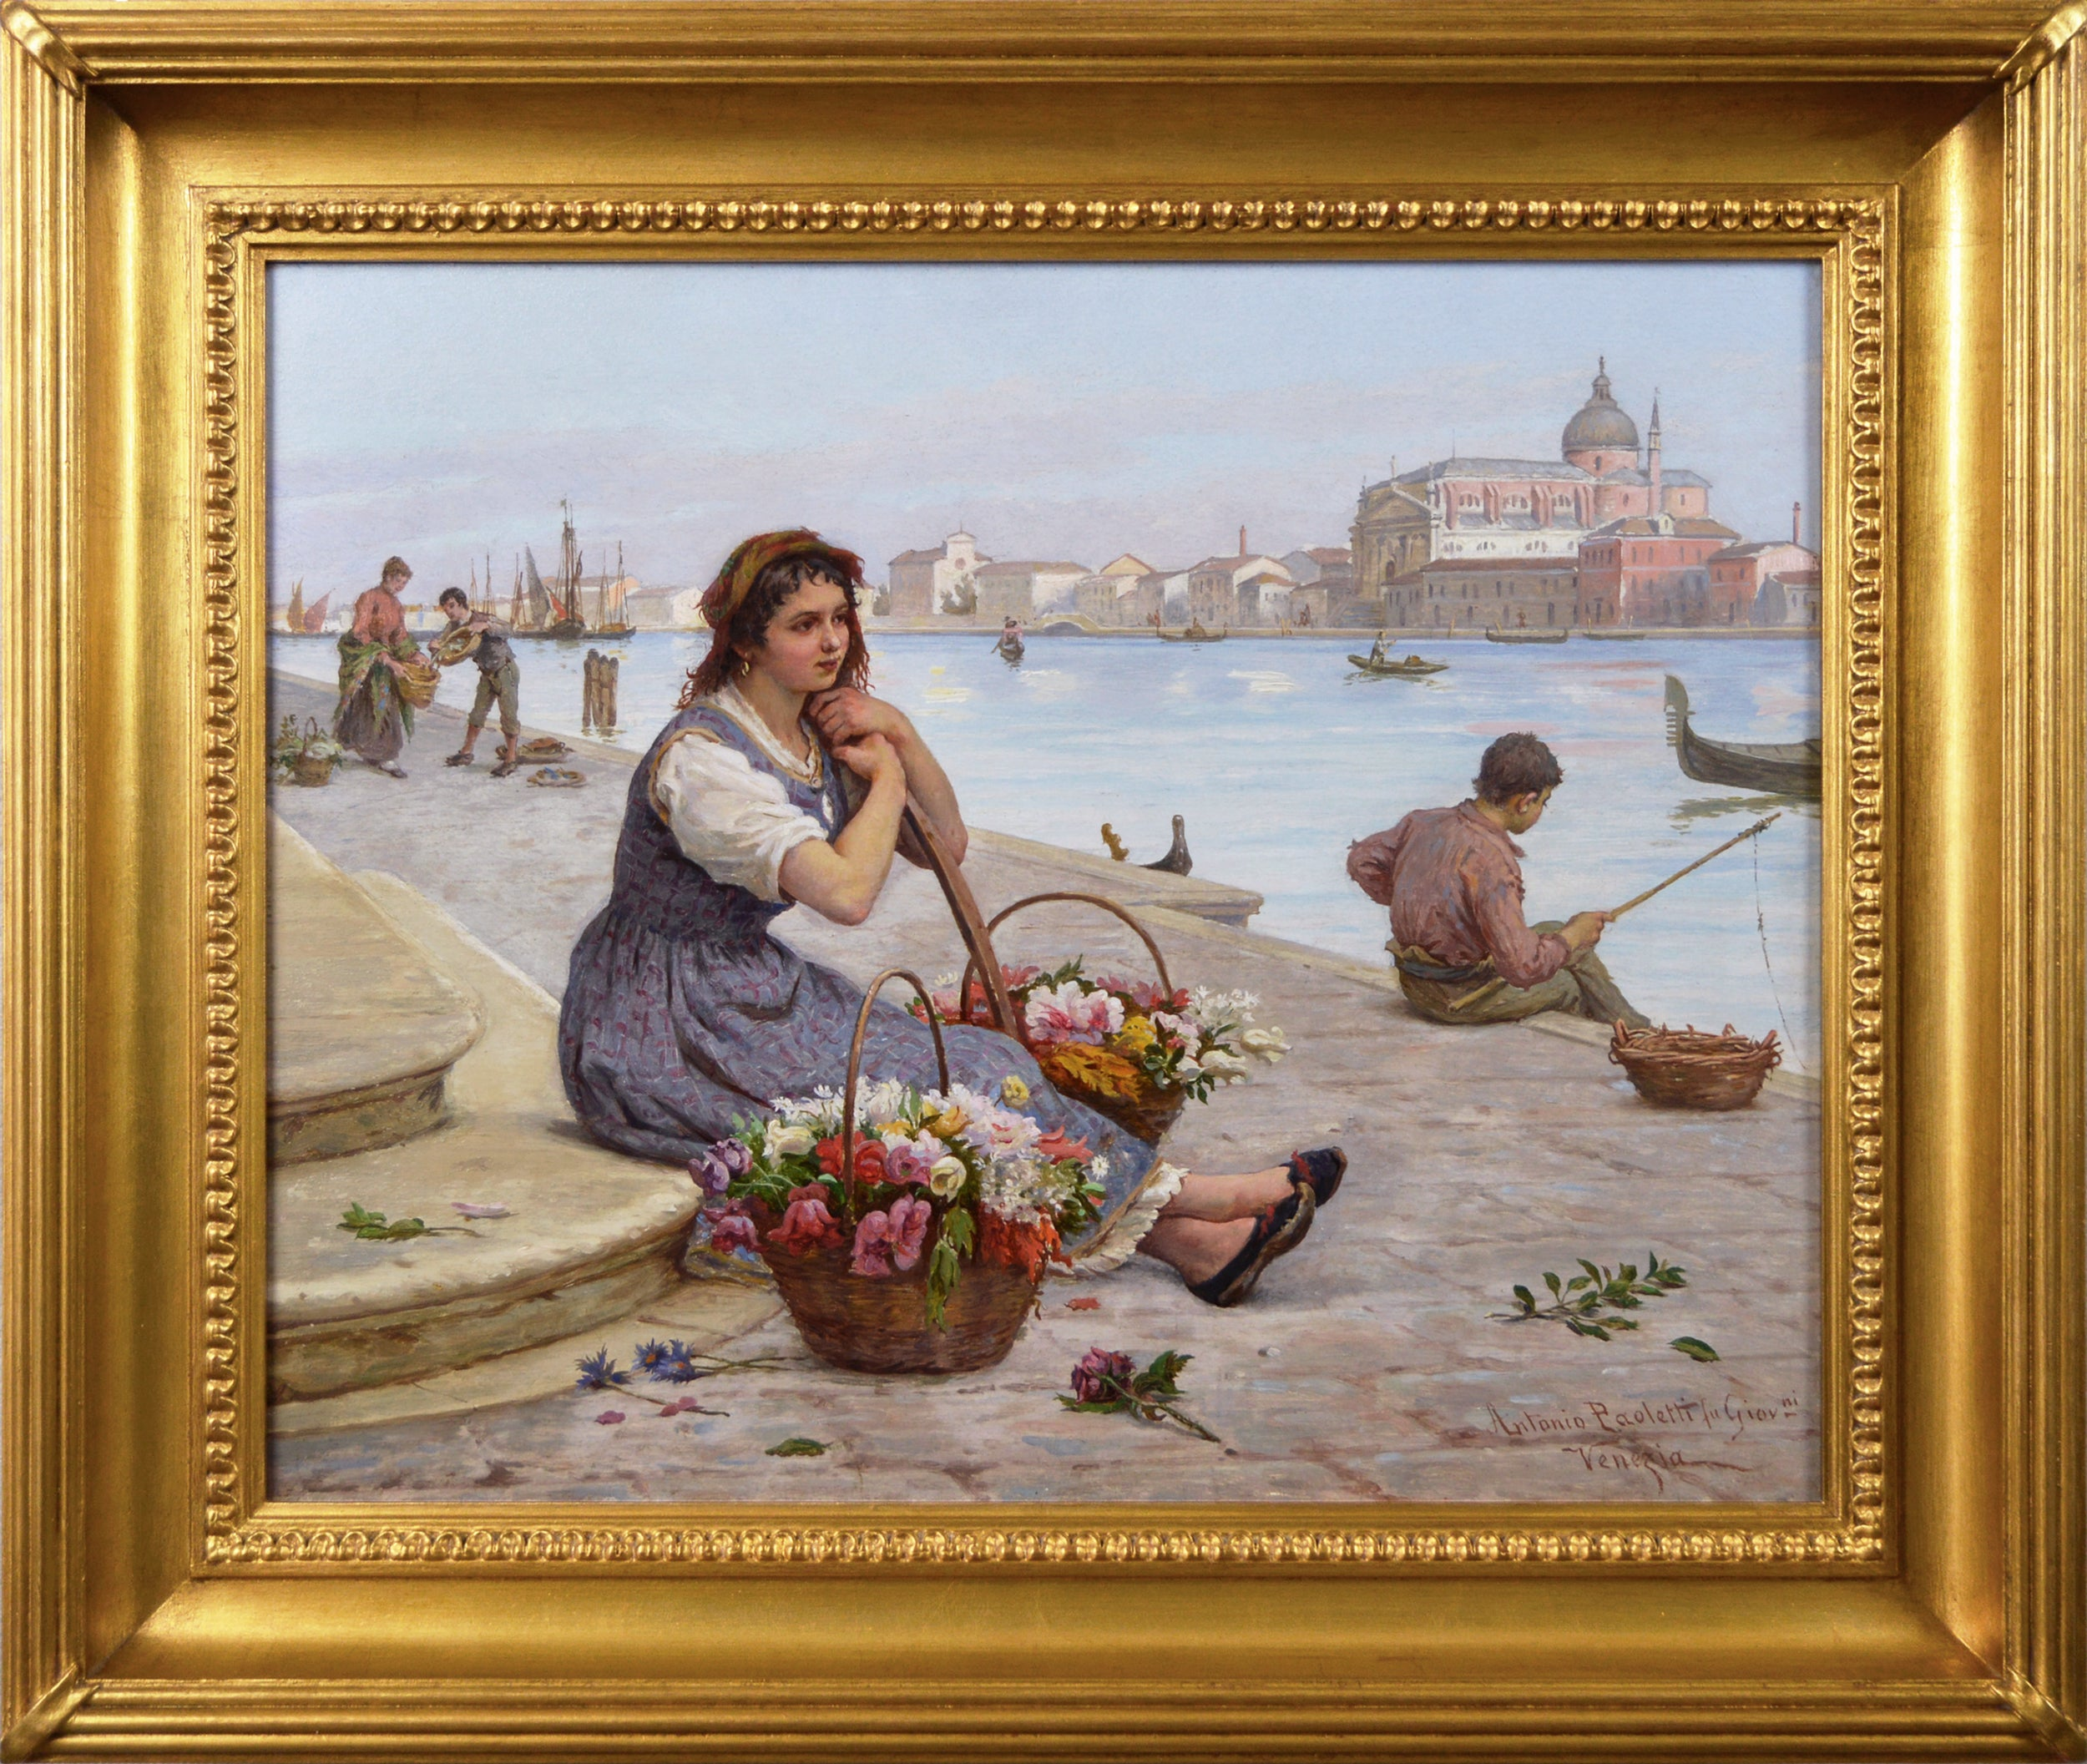 19th Century townscape oil painting of a flower seller by the Grand Canal Venice